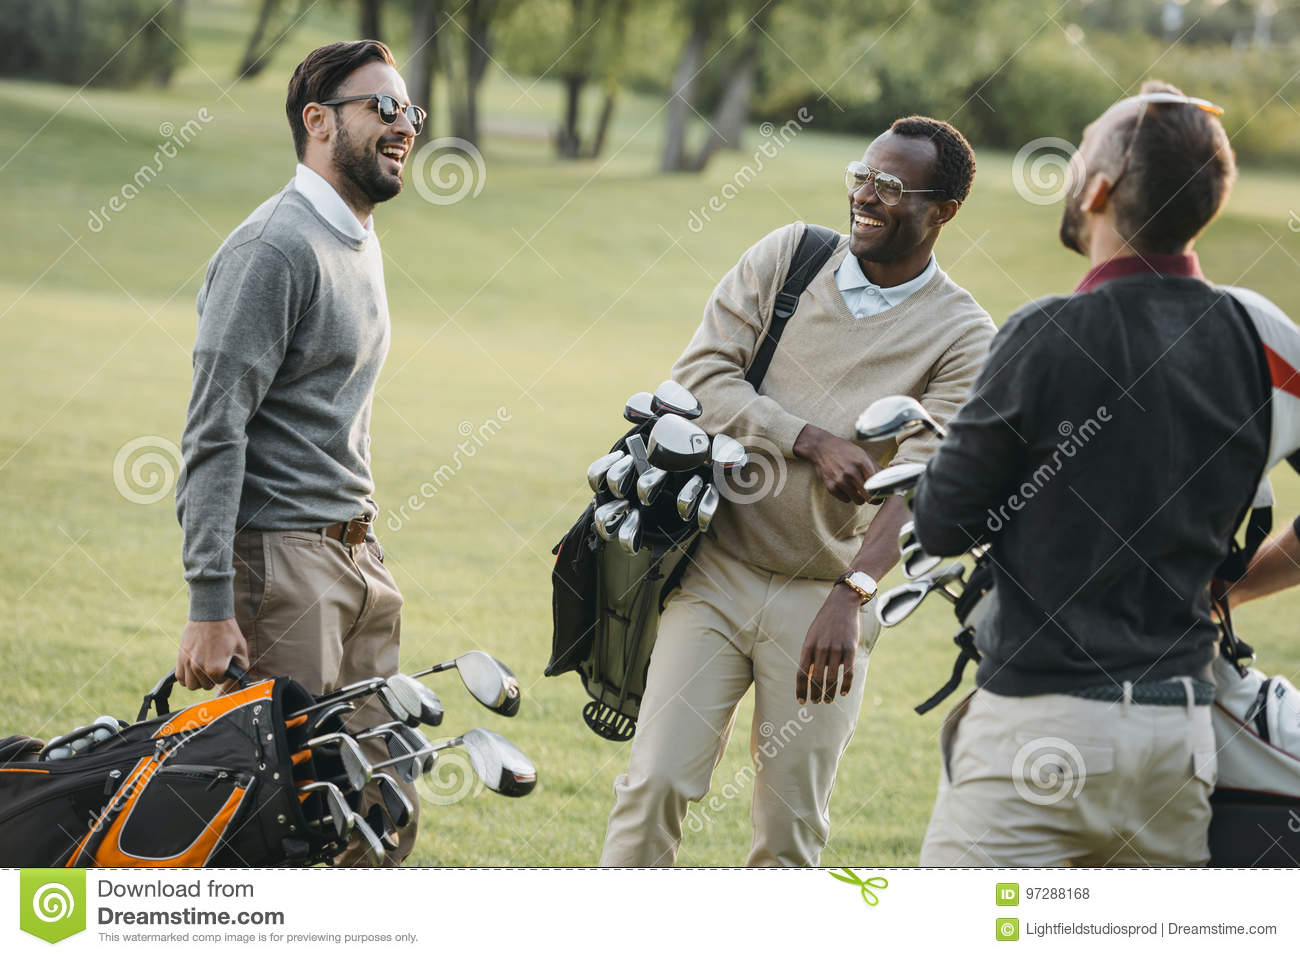 Golf players with golf clubs having fun on golf course